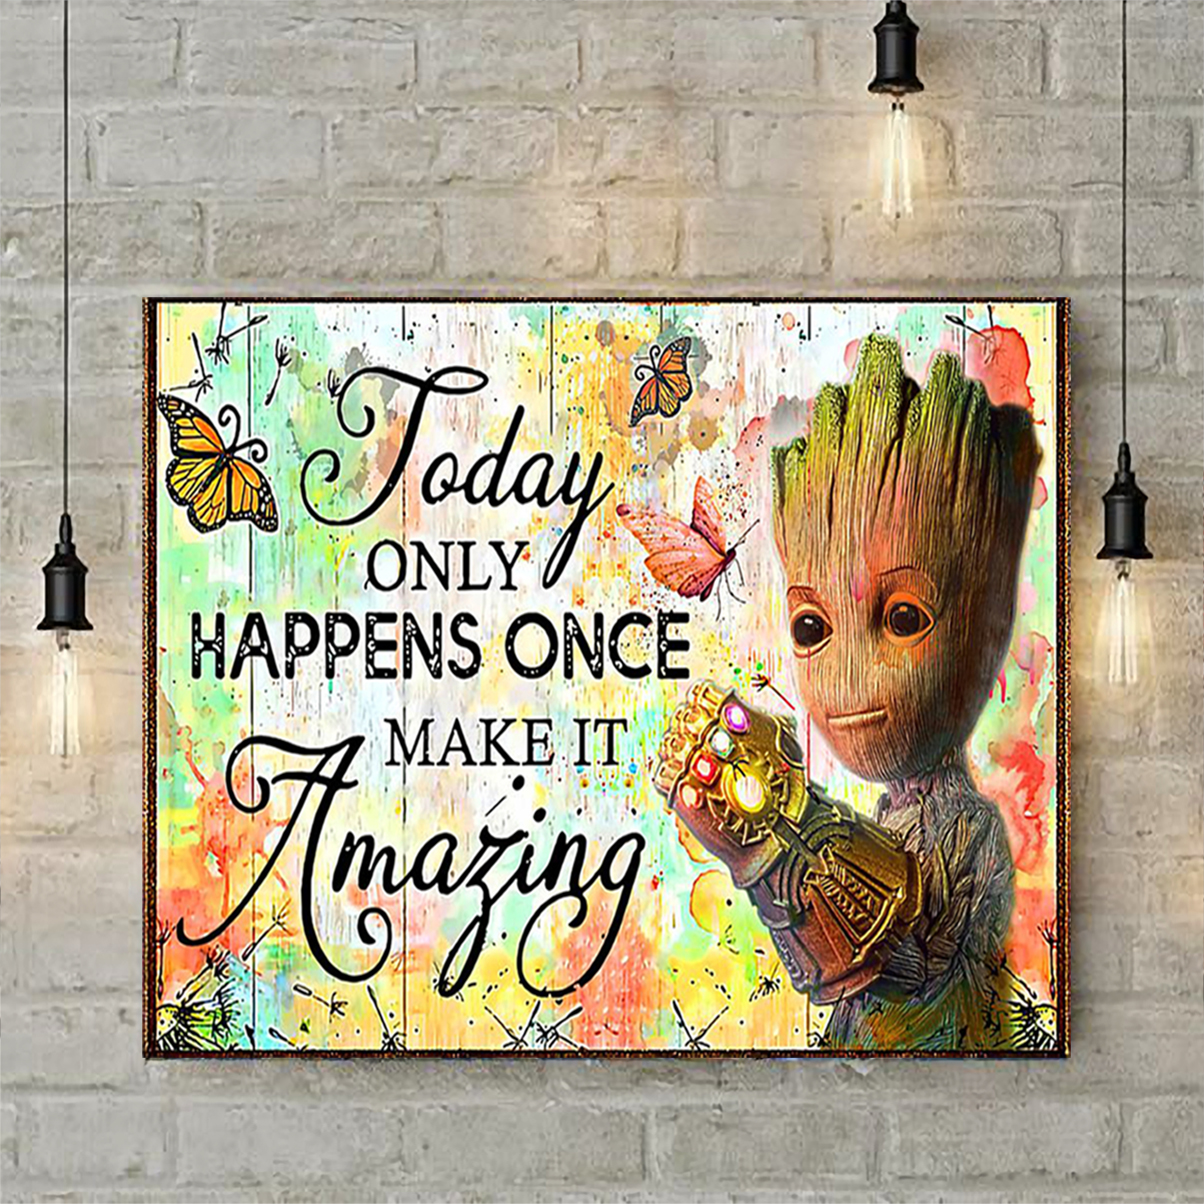 Groot today only happens once make it amazing poster A2